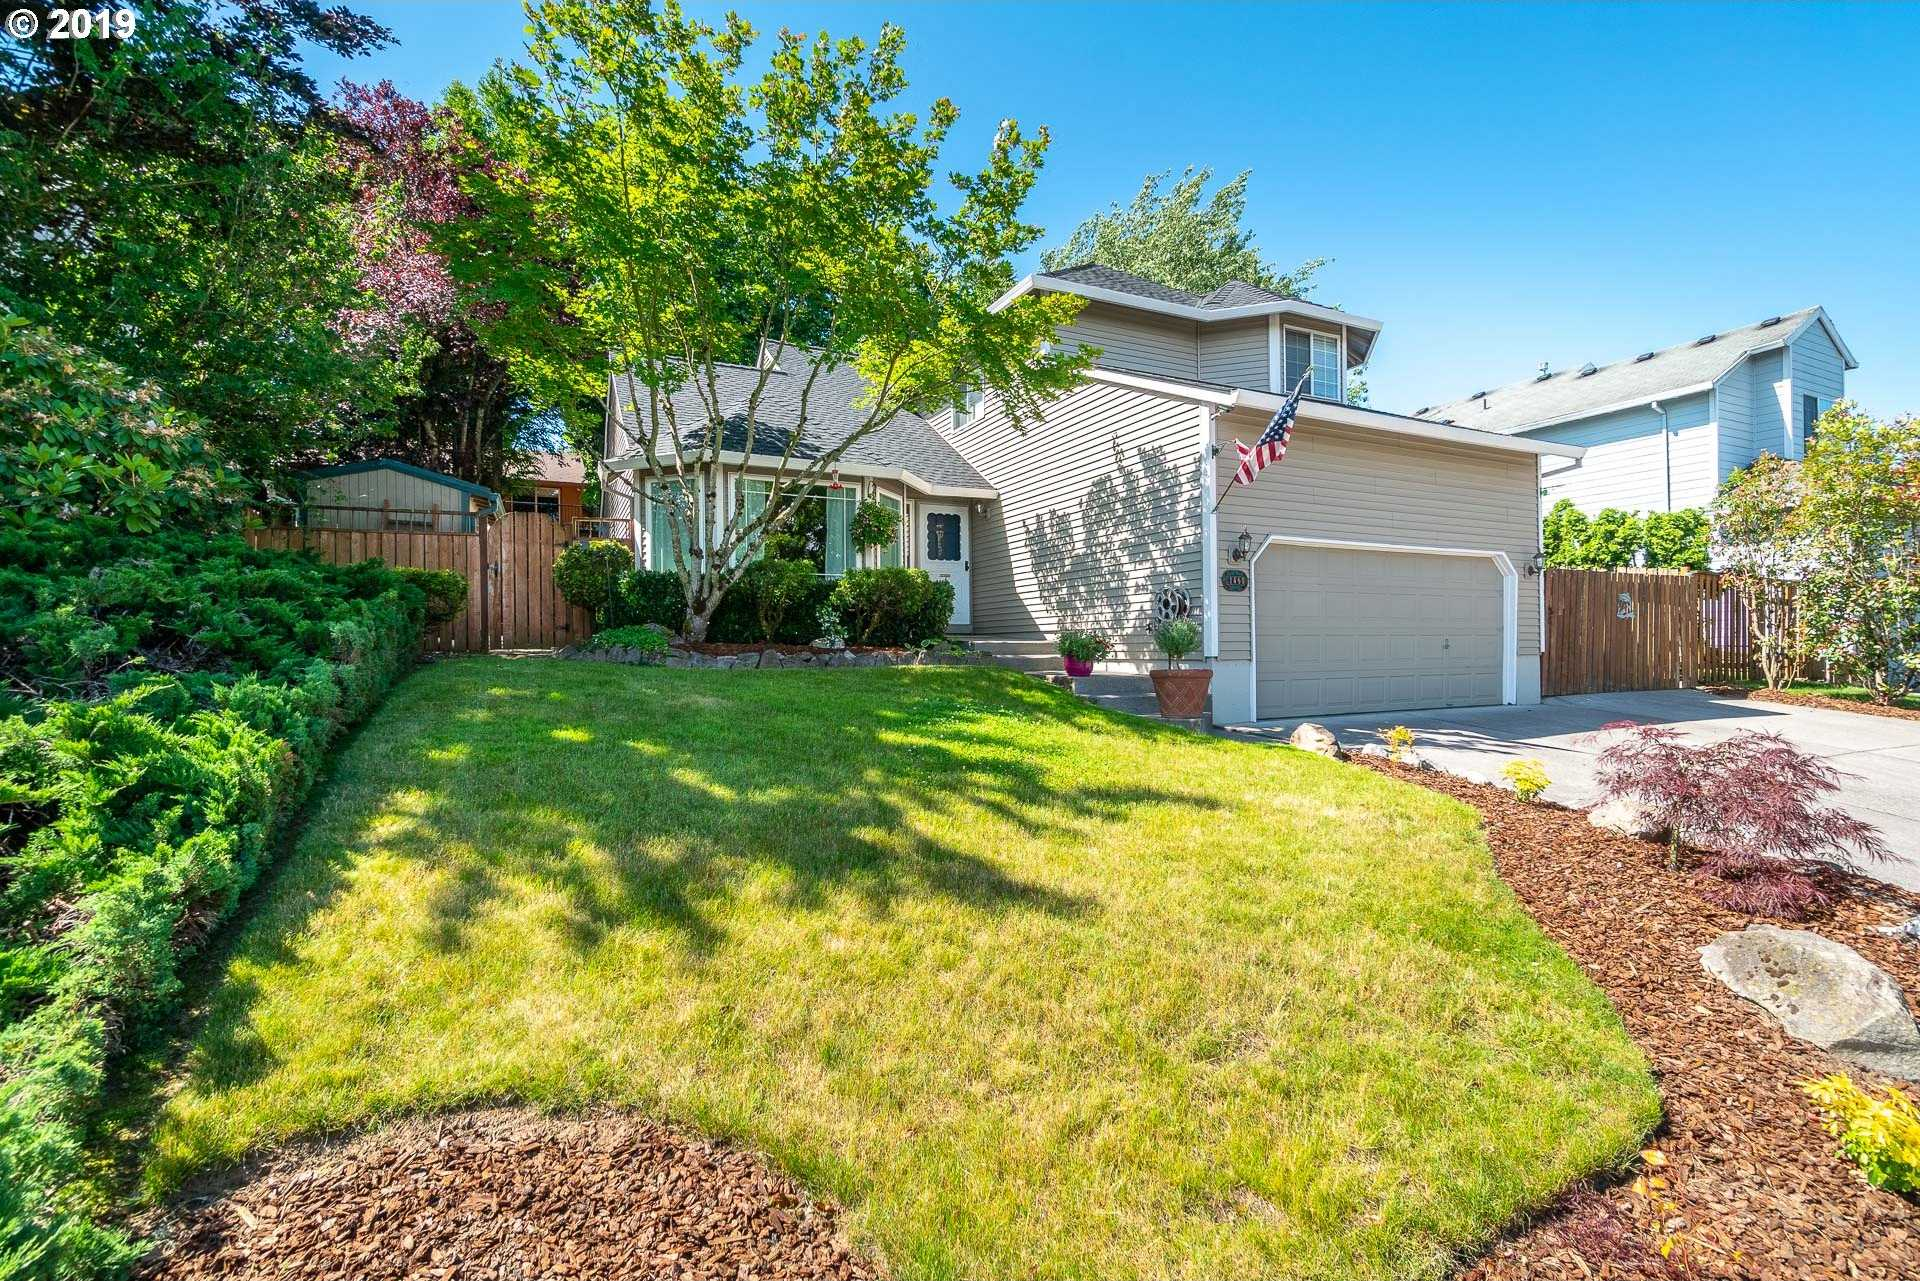 $350,000 - 3Br/3Ba -  for Sale in Troutdale